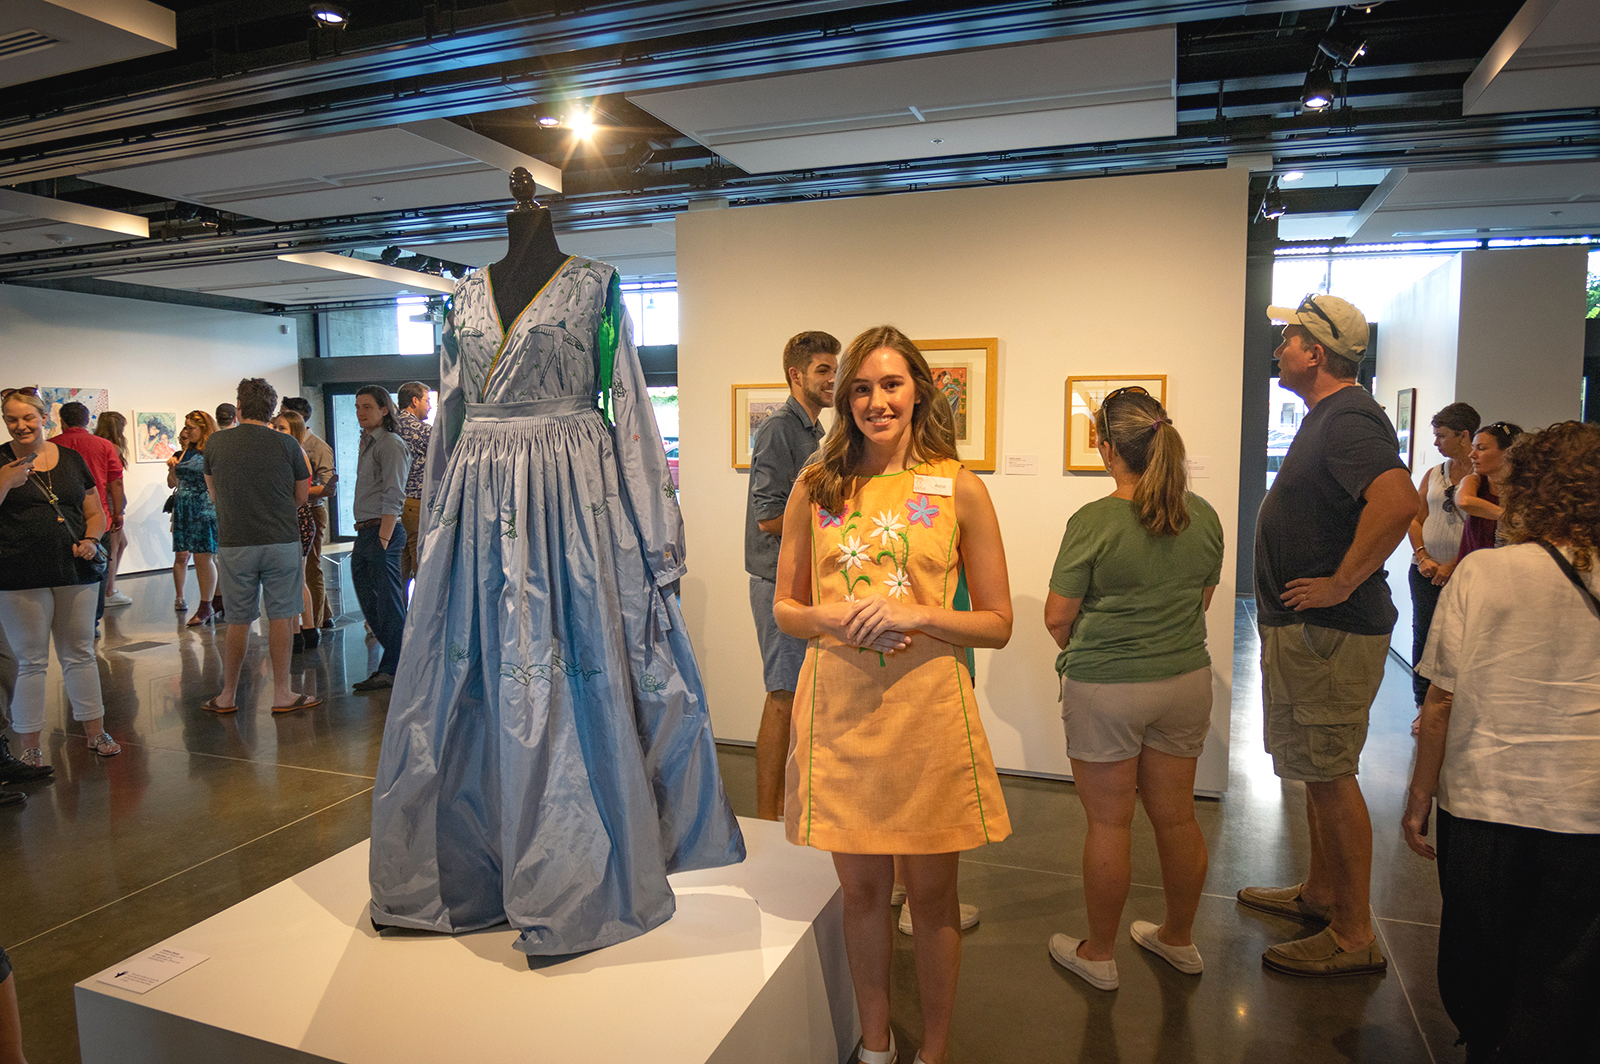 Dusk Dress  costume and linoleum block prints by Kathleen Neeley (pictured).  Spection  opening reception, August 3, 2018.  Photo credit: Thomas Shahan